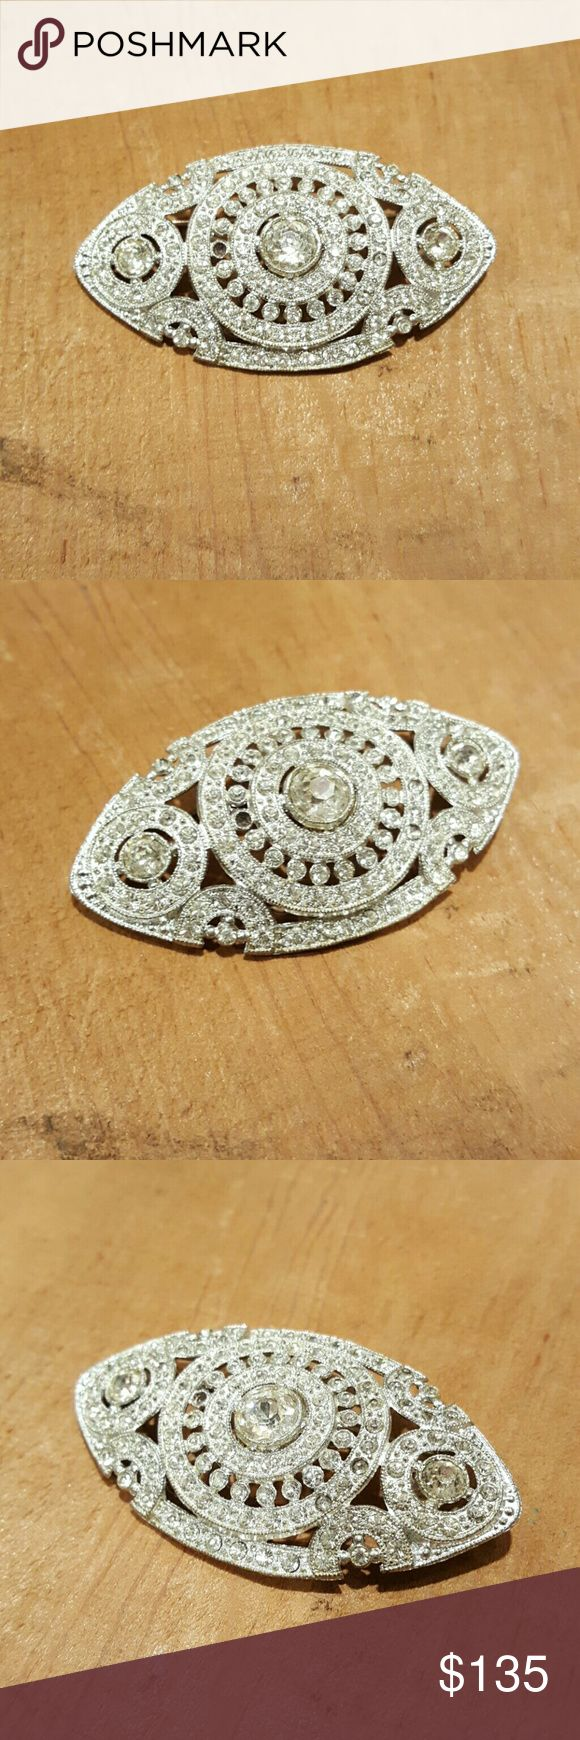 Rhinestone brooch Elegant and priceless!  All gems sparkly except for 1 missing see pics.  Hardly noticable especially when wearing. Vintage Jewelry Brooches